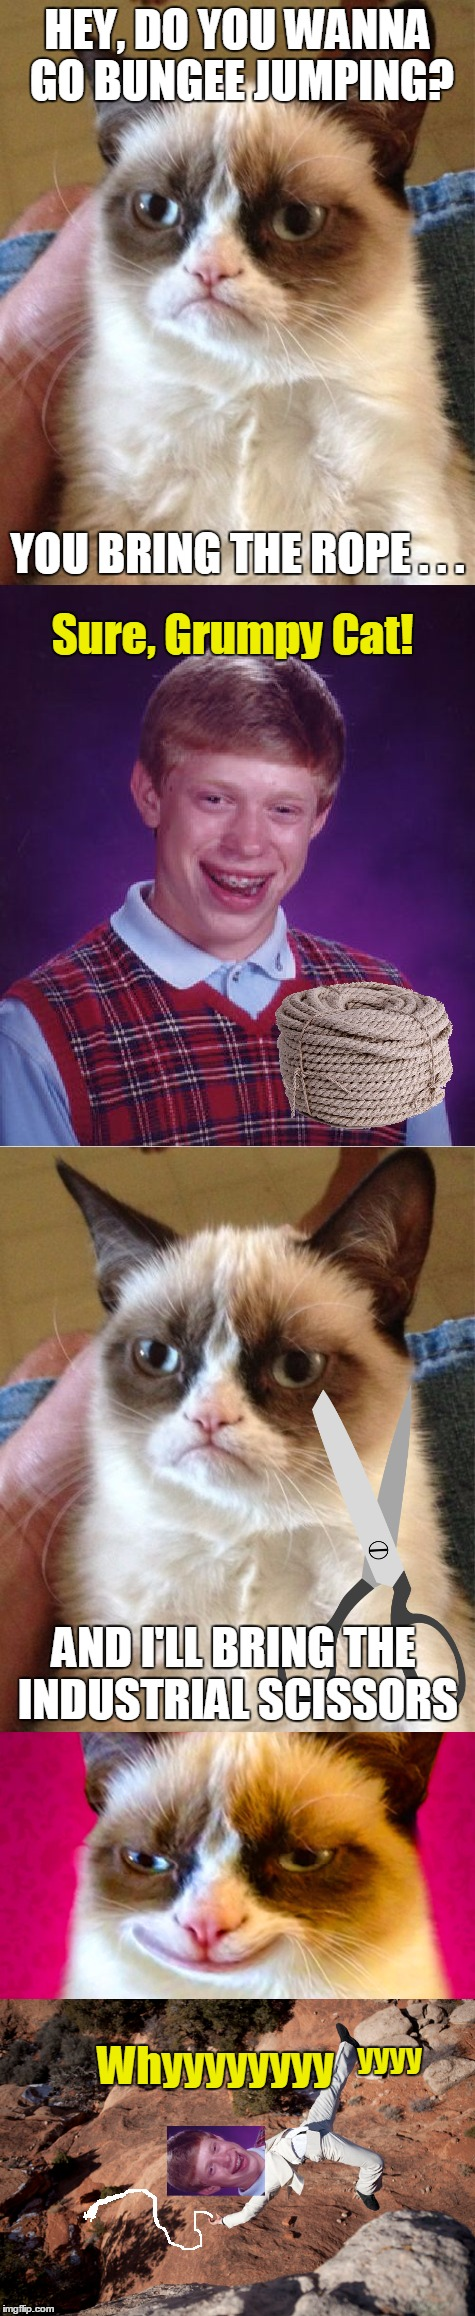 If Grumpy Cat Asks if You Want to Go Bungee Jumping - Say No | HEY, DO YOU WANNA GO BUNGEE JUMPING? Whyyyyyyyy YOU BRING THE ROPE . . . Sure, Grumpy Cat! AND I'LL BRING THE INDUSTRIAL SCISSORS yyyy | image tagged in memes,funny,grumpy cat,bad luck brian,bungee,meme | made w/ Imgflip meme maker